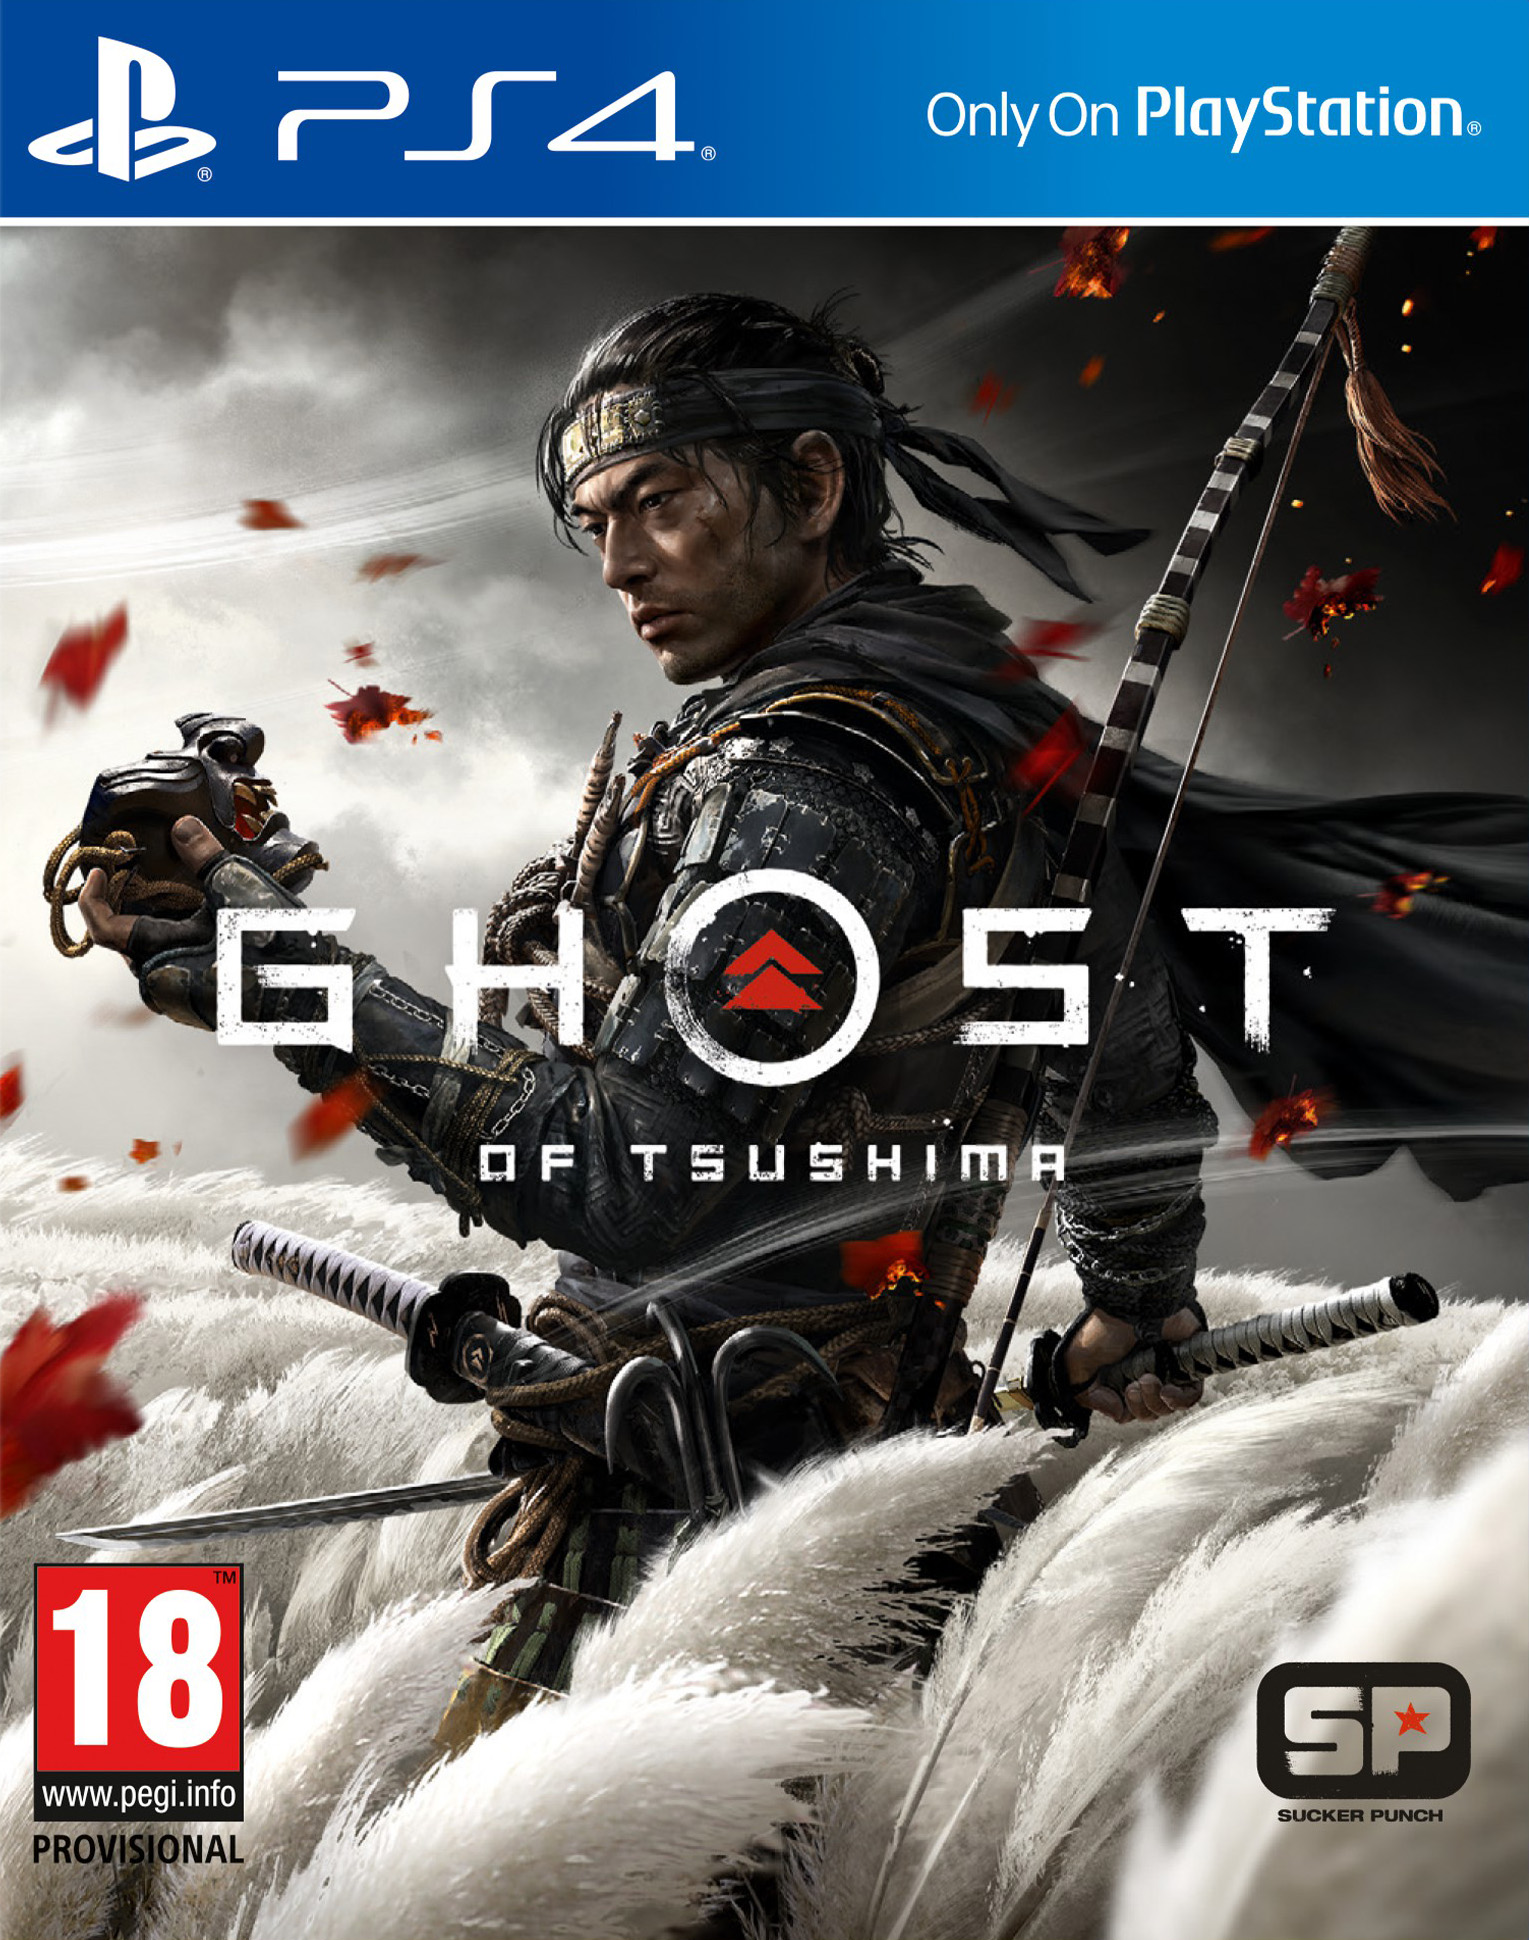 Ghost of Tsushima | Призрак Цусимы [PS4 Exclusive] 5.05 / 6.72 / 7.02 / 7.55 [EUR] (2020) [Русский] (v1.12)